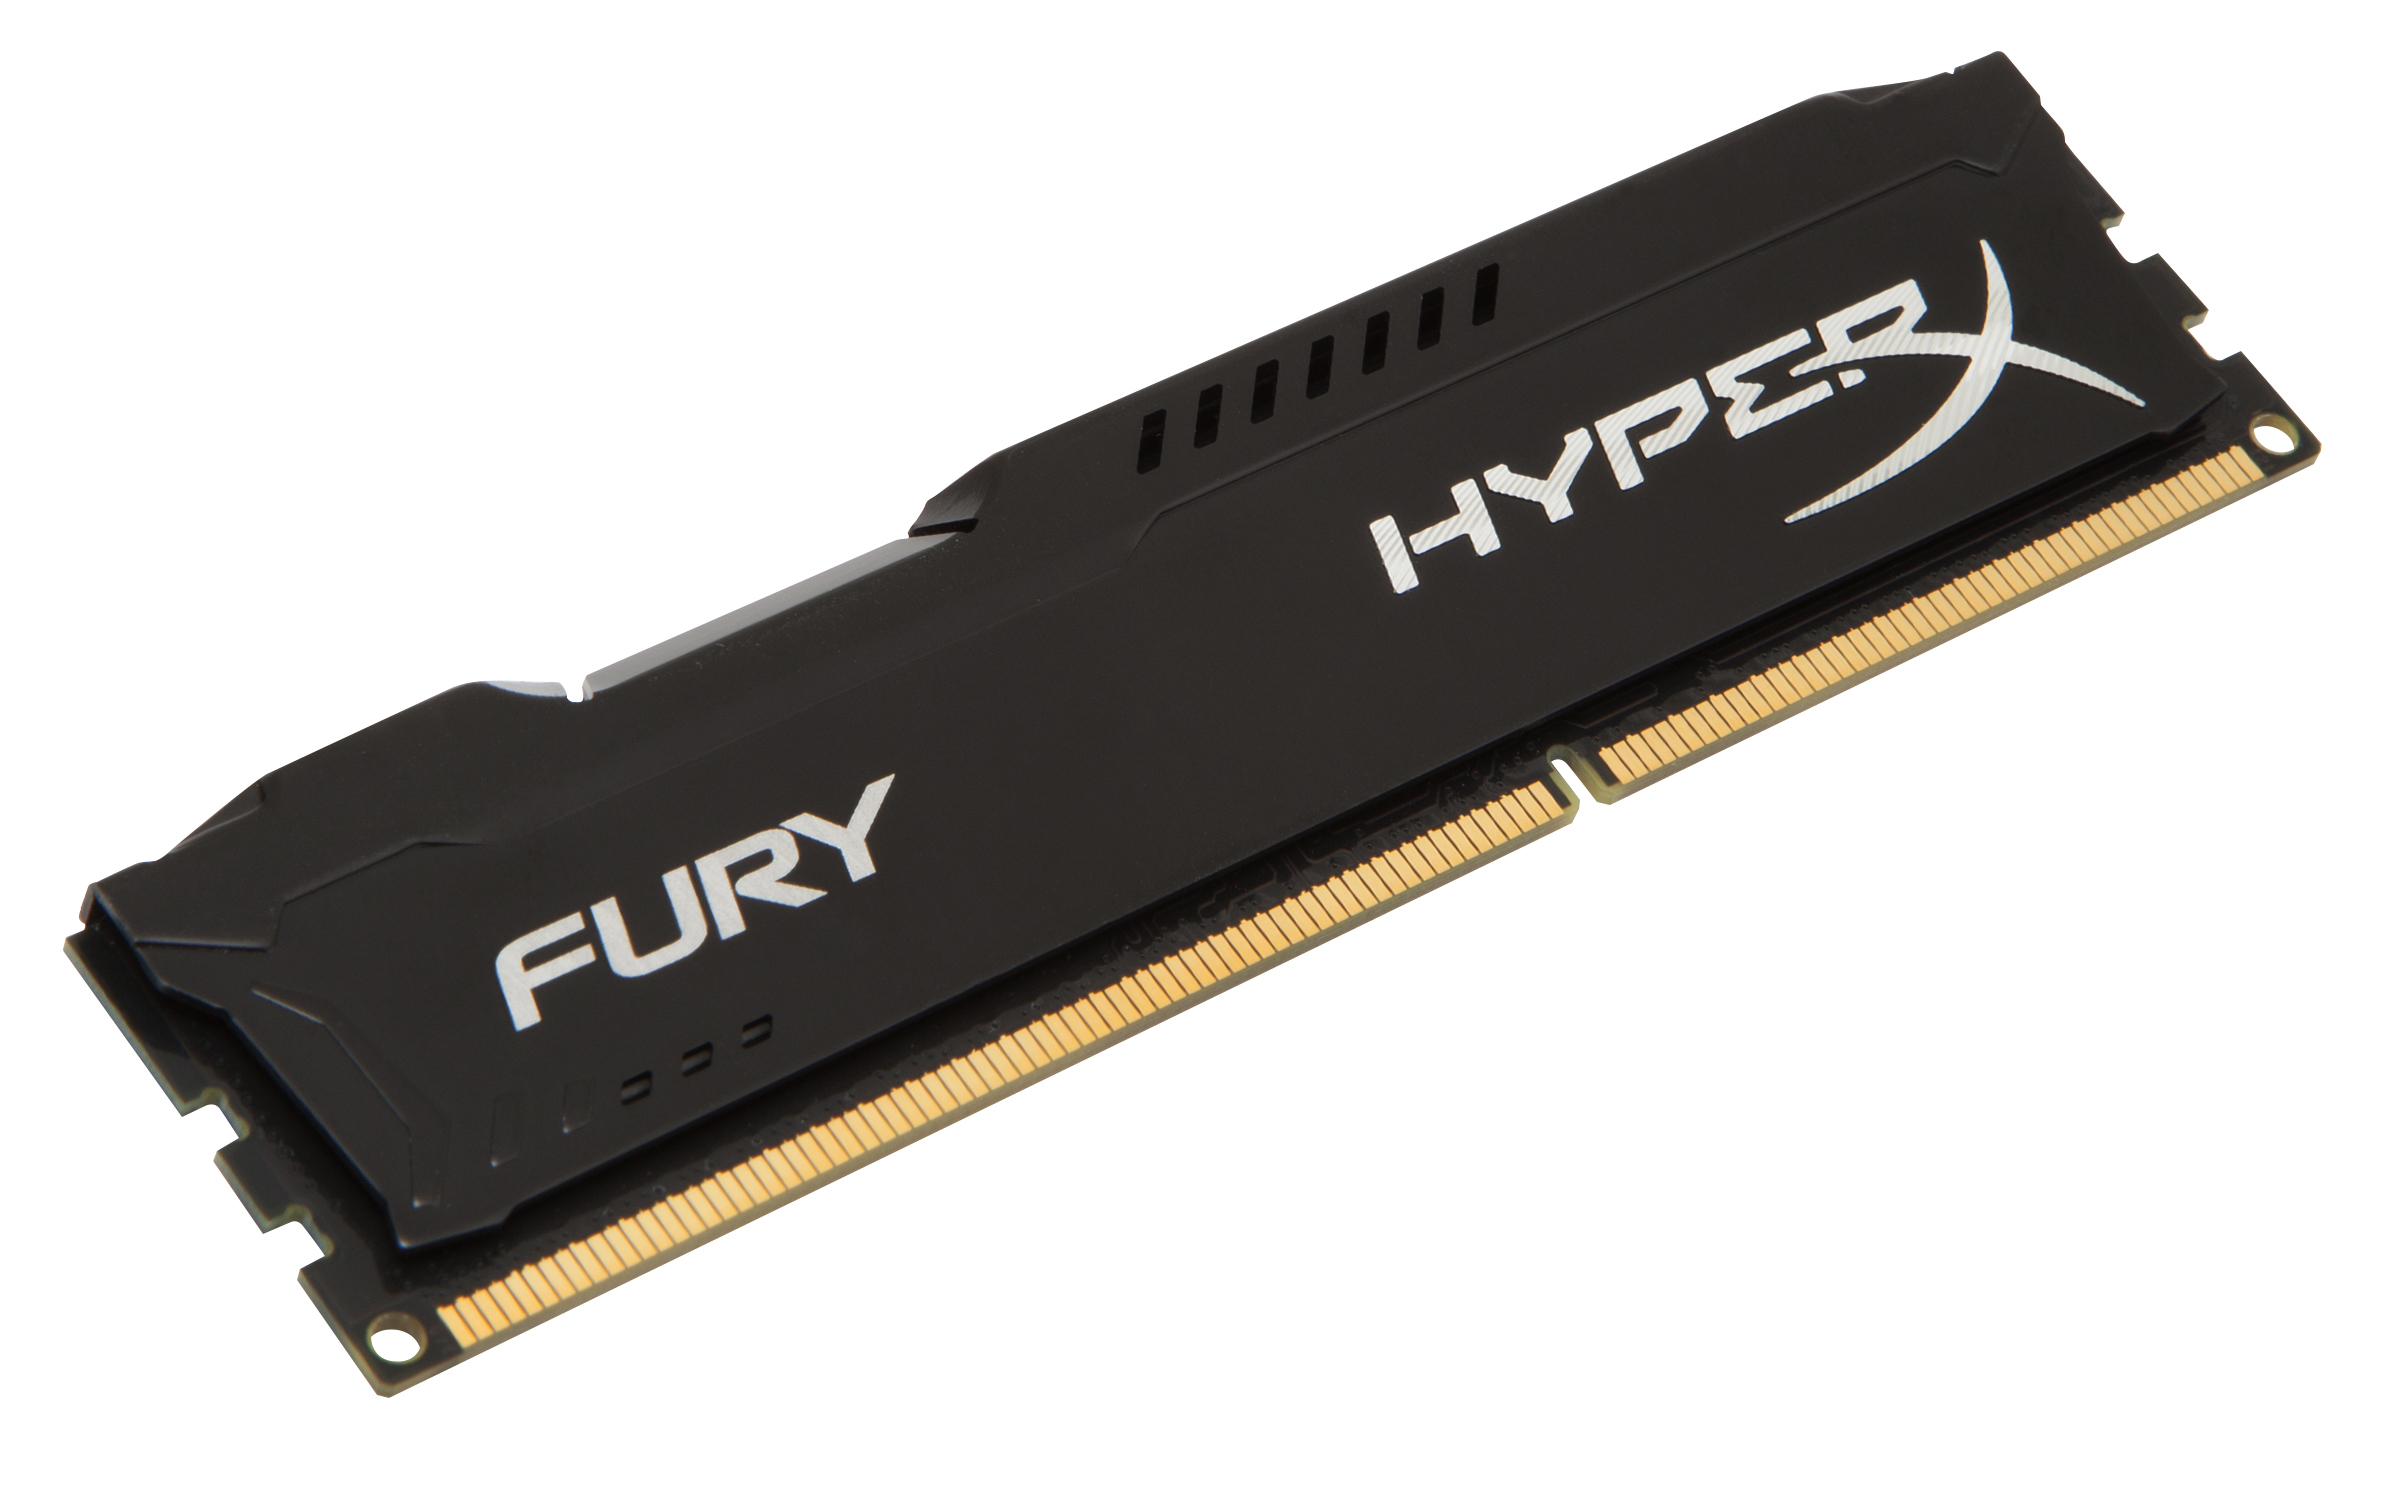 8GB 1600MHz DDR3 CL10 DIMM HyperX Fury B